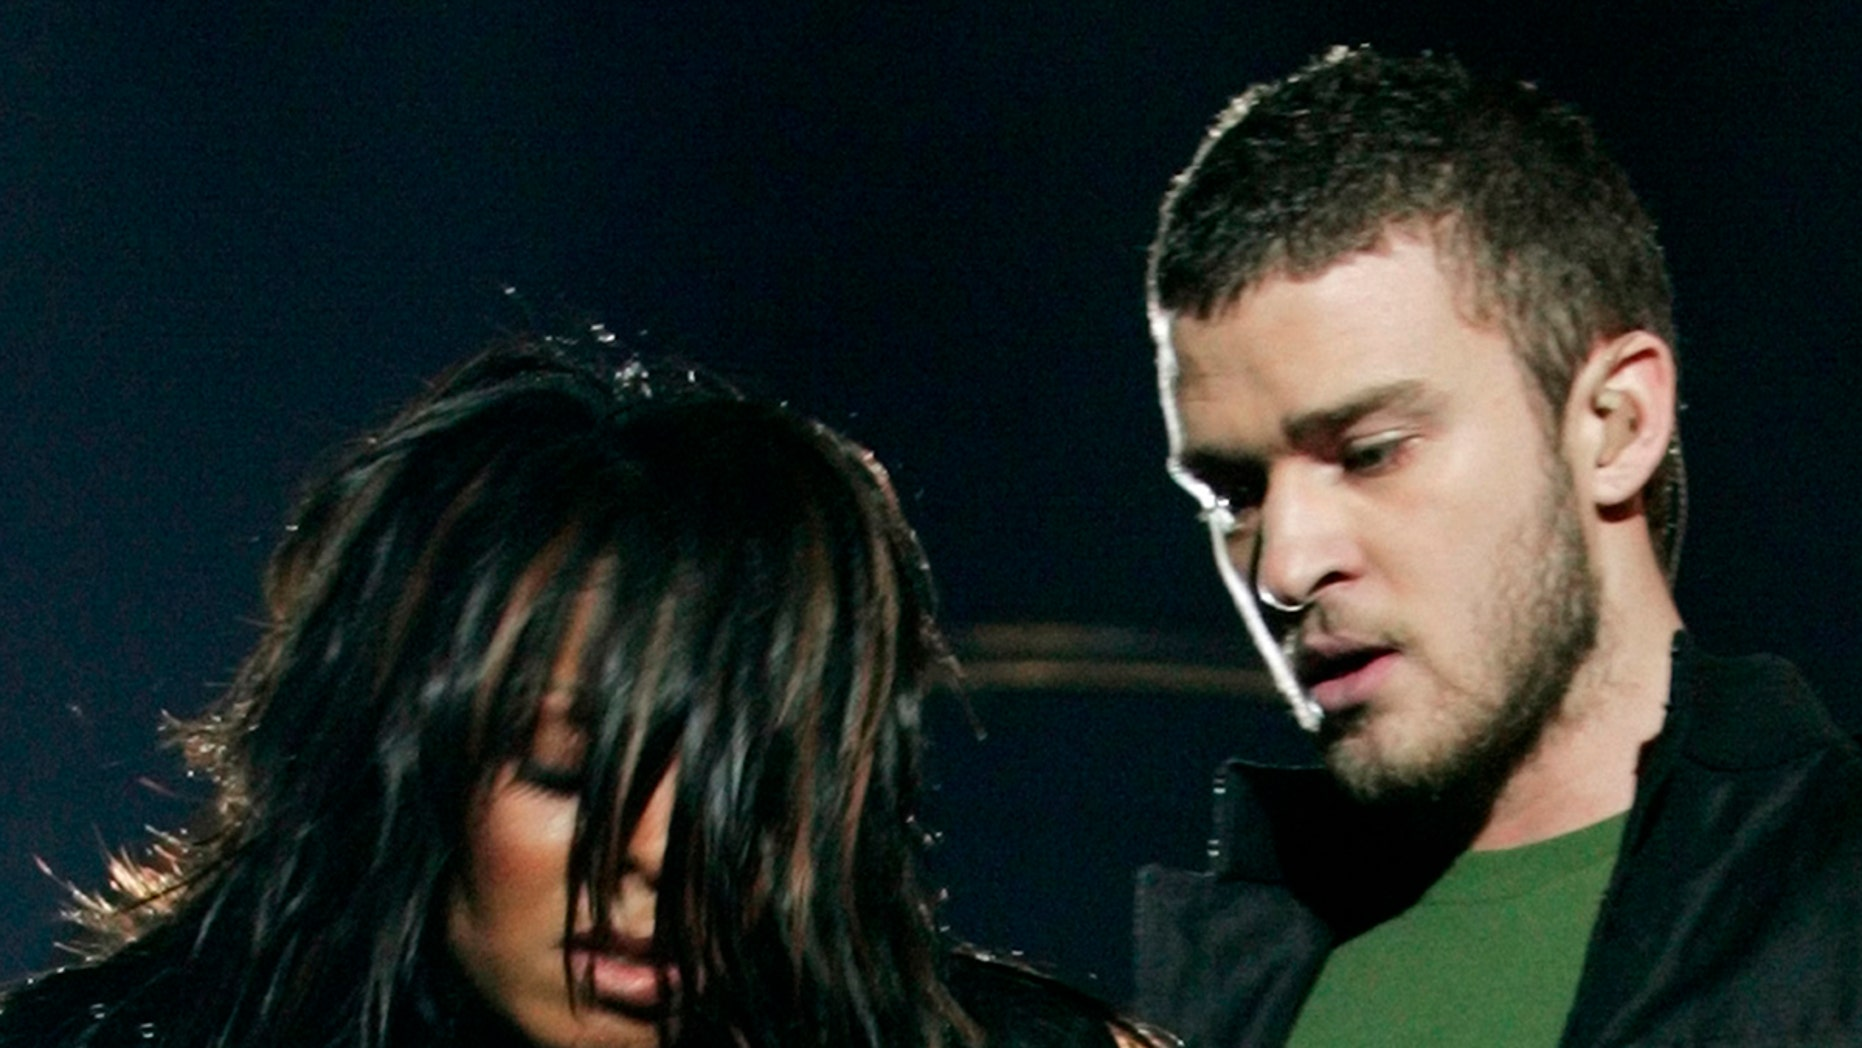 """Justin Timberlake is gearing up for his first Super Bowl Halftime Show gig since the notorious """"wardrobe malfunction"""" with Janet Jackson, seen here."""